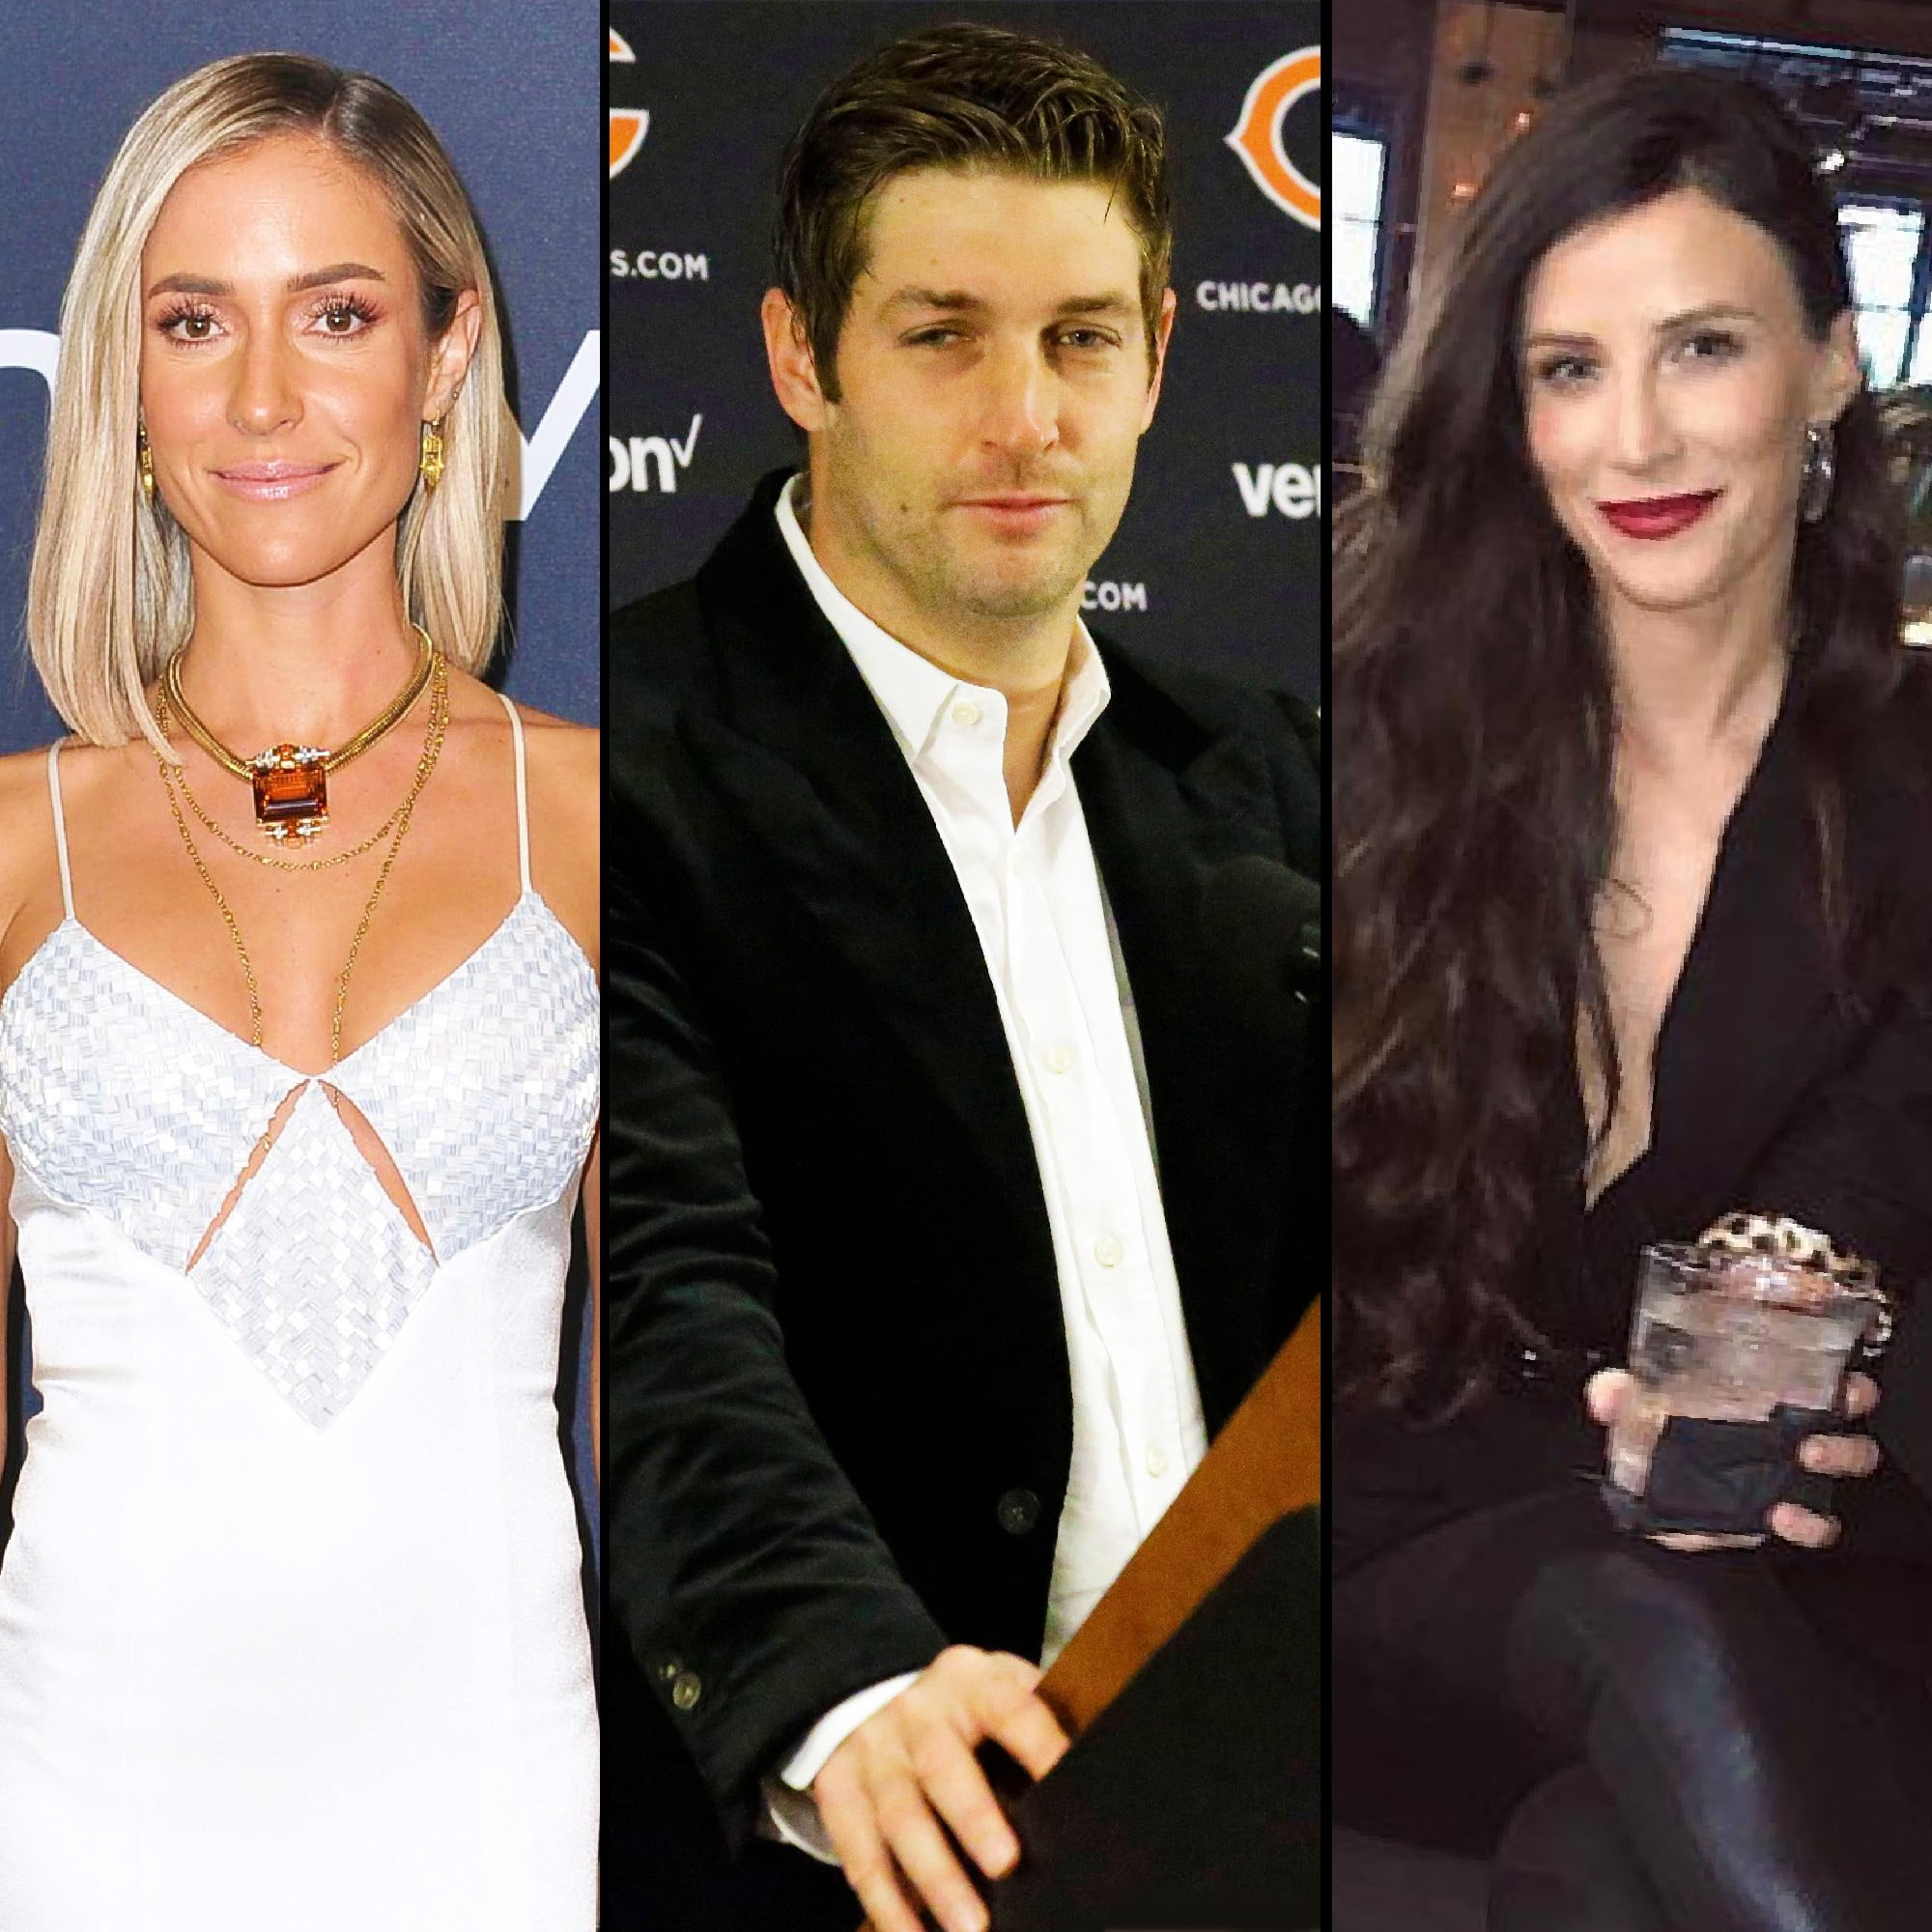 Kristin Cavallari Fans Think Jay Cutler Hung Out With Her Ex-BFF Kelly Henderson Amid Divorce